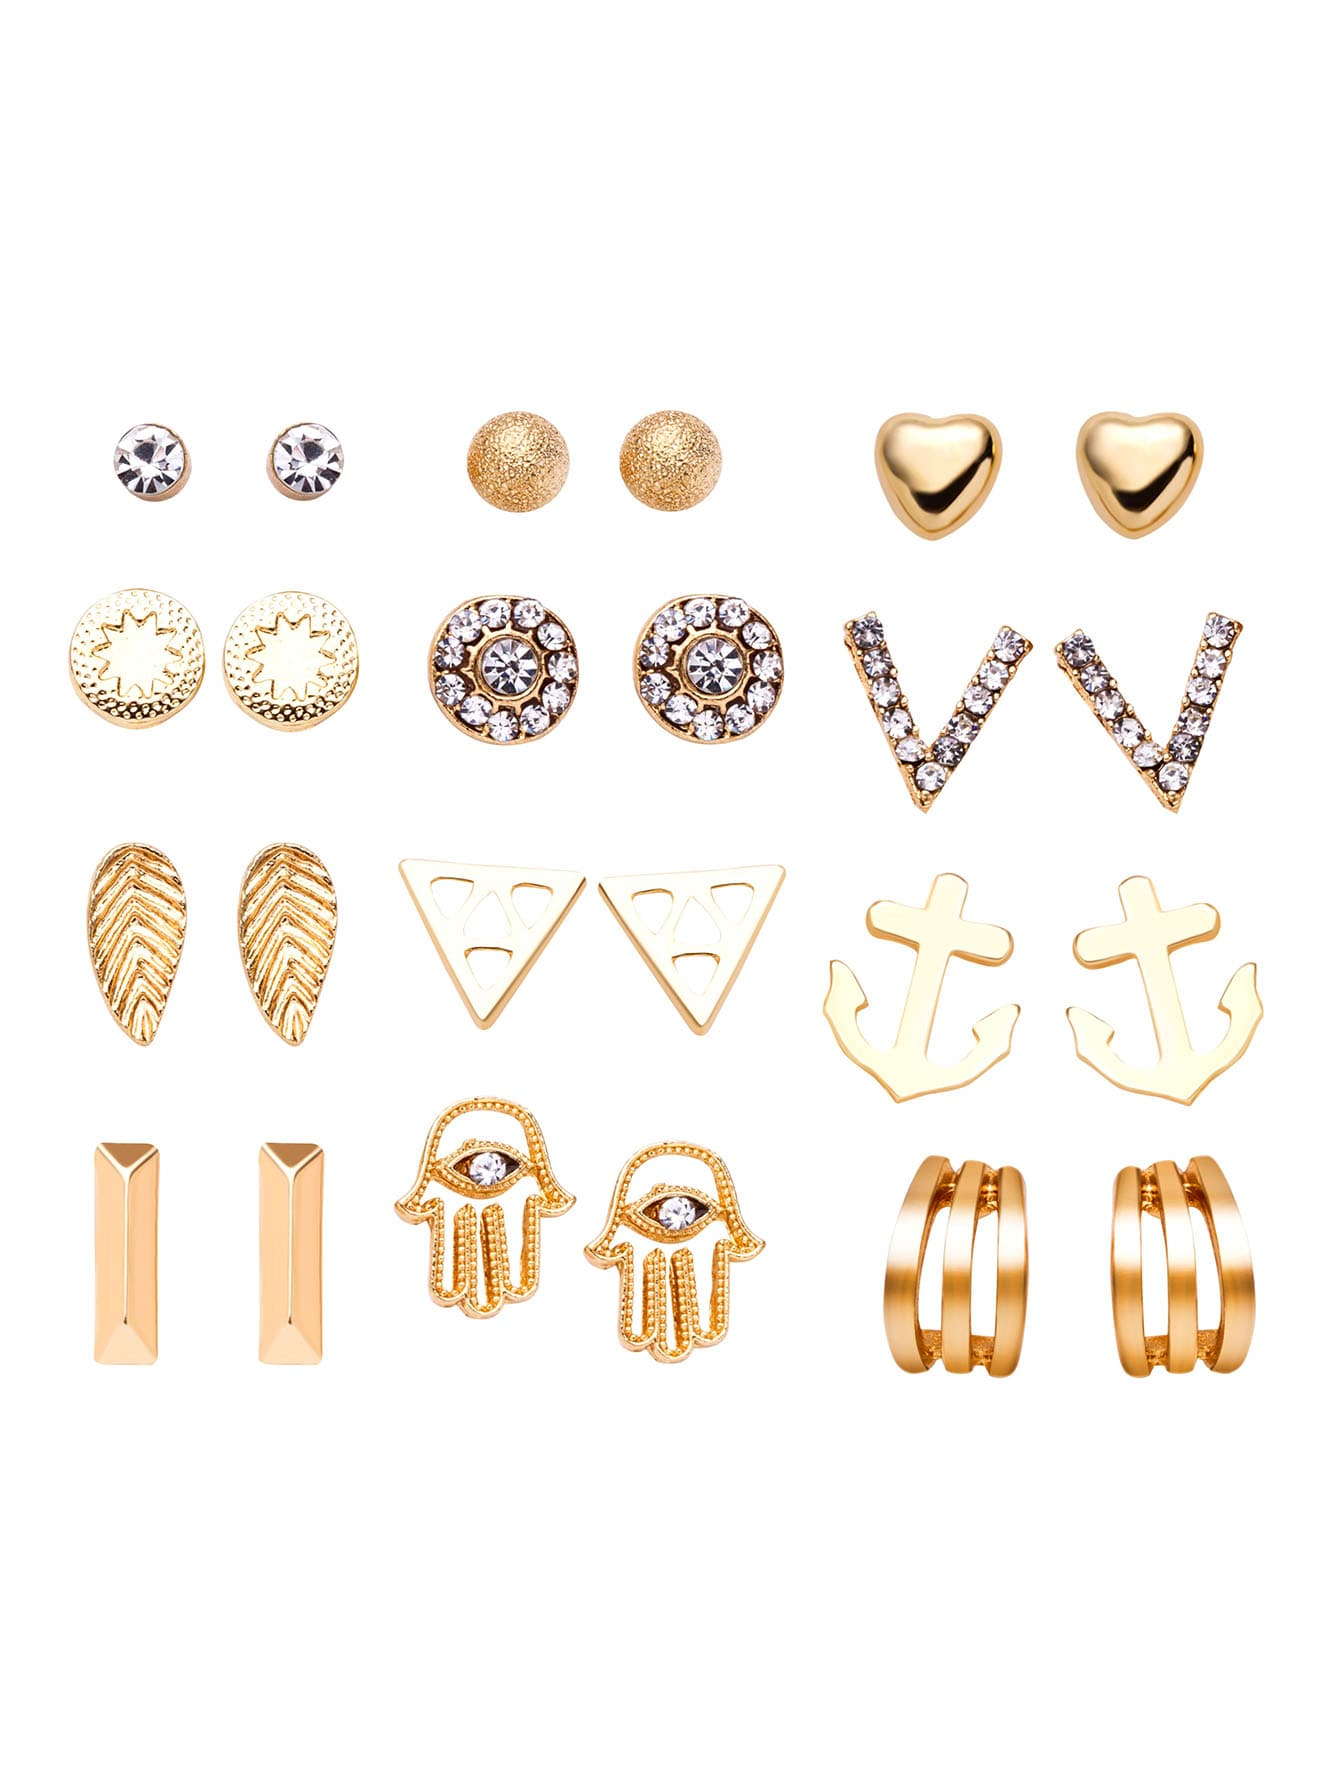 Gold Plated Rhinestone Multi Shape Stud Earrings Set 2014 new designer black women fsahion zipper sandals pumps sotf suede leather shoes commodities trading platform cheap sandals